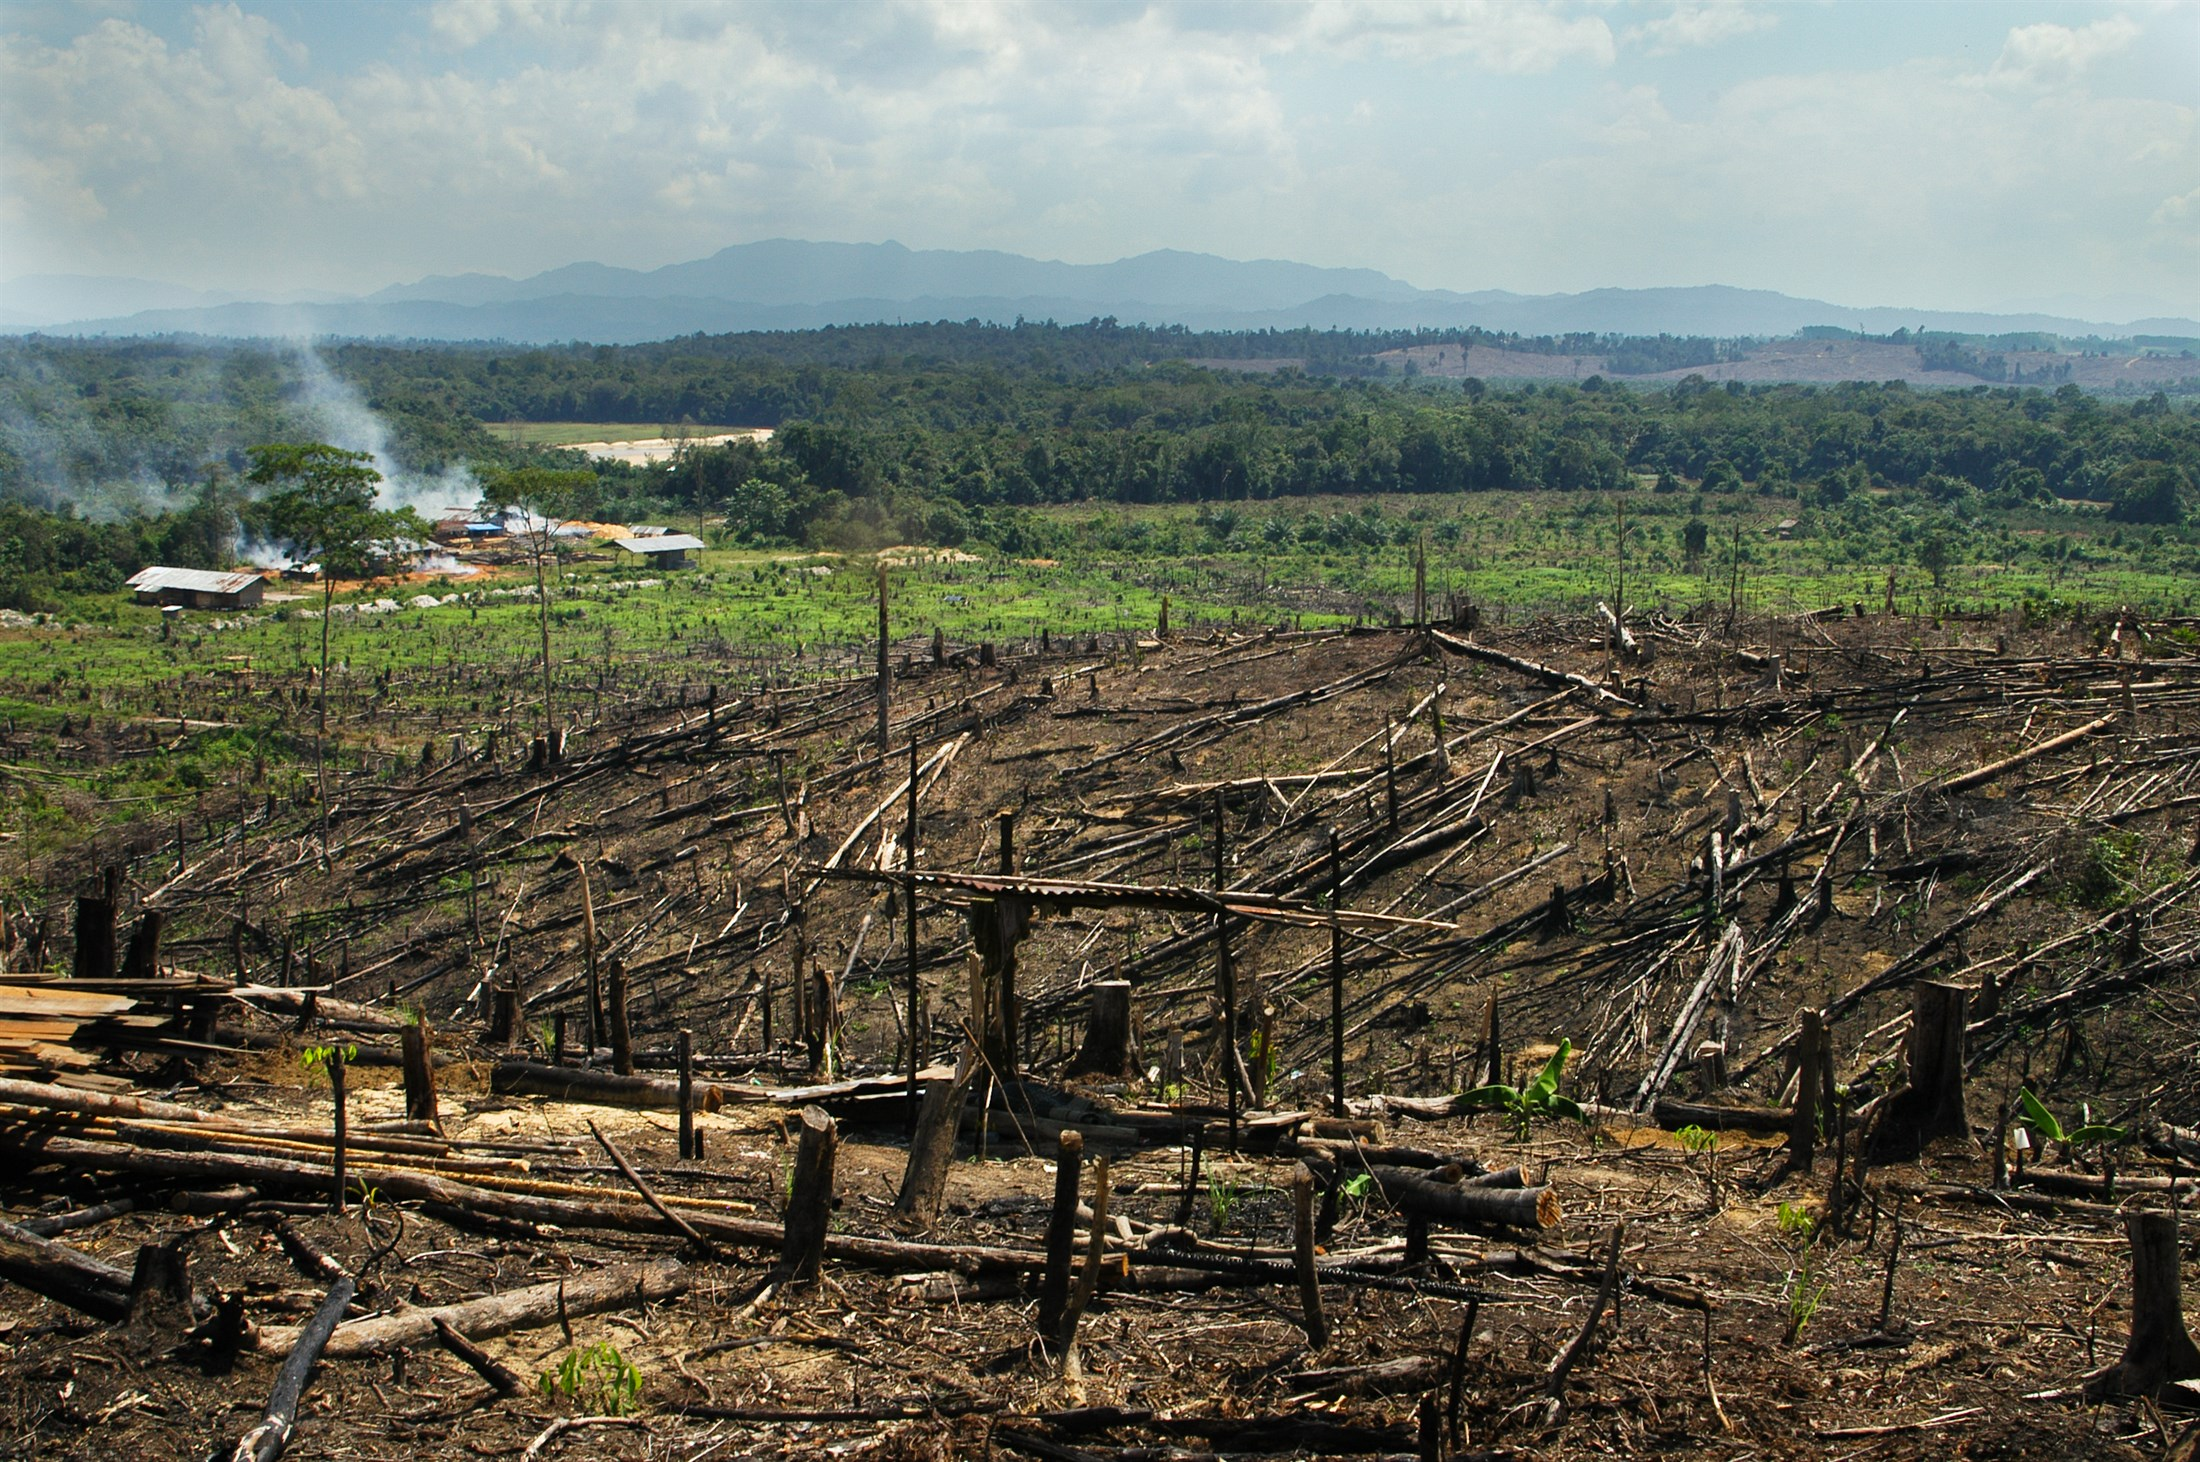 burning-rainforest-on-sumatra-to-make-space-for-palm-oil-plantations-indonesia_8277-2200x1462px